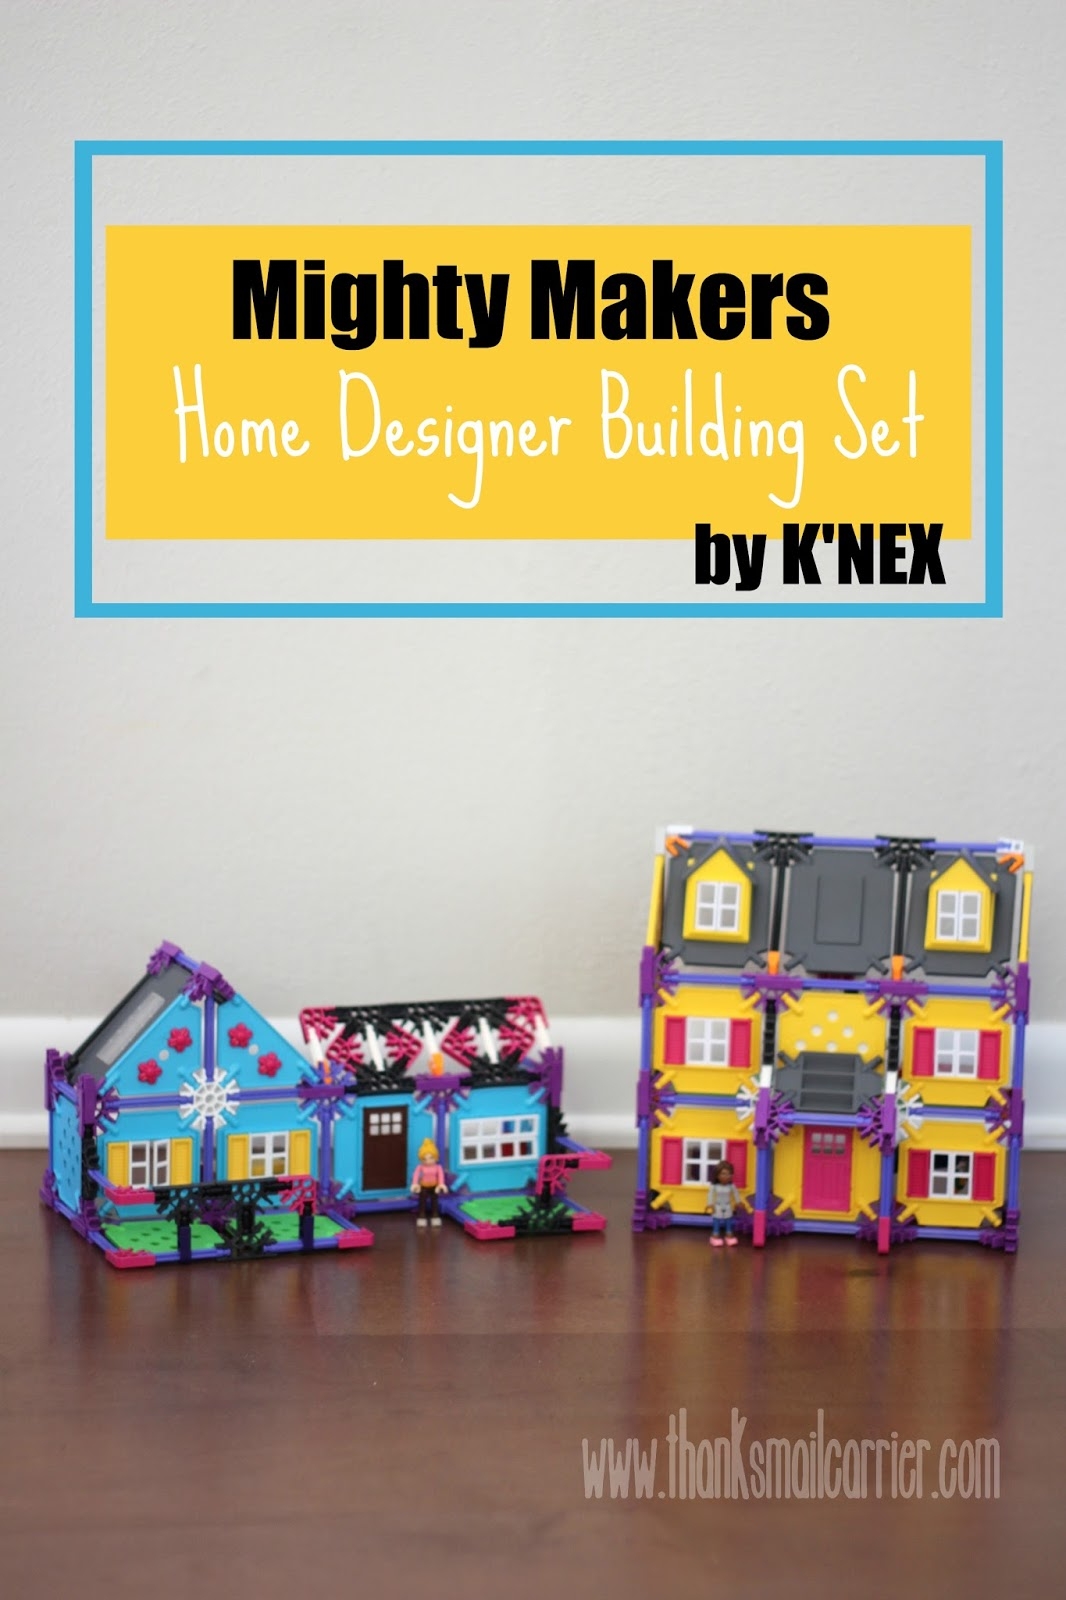 K'NEX Mighty Makers Home Designer Building Set